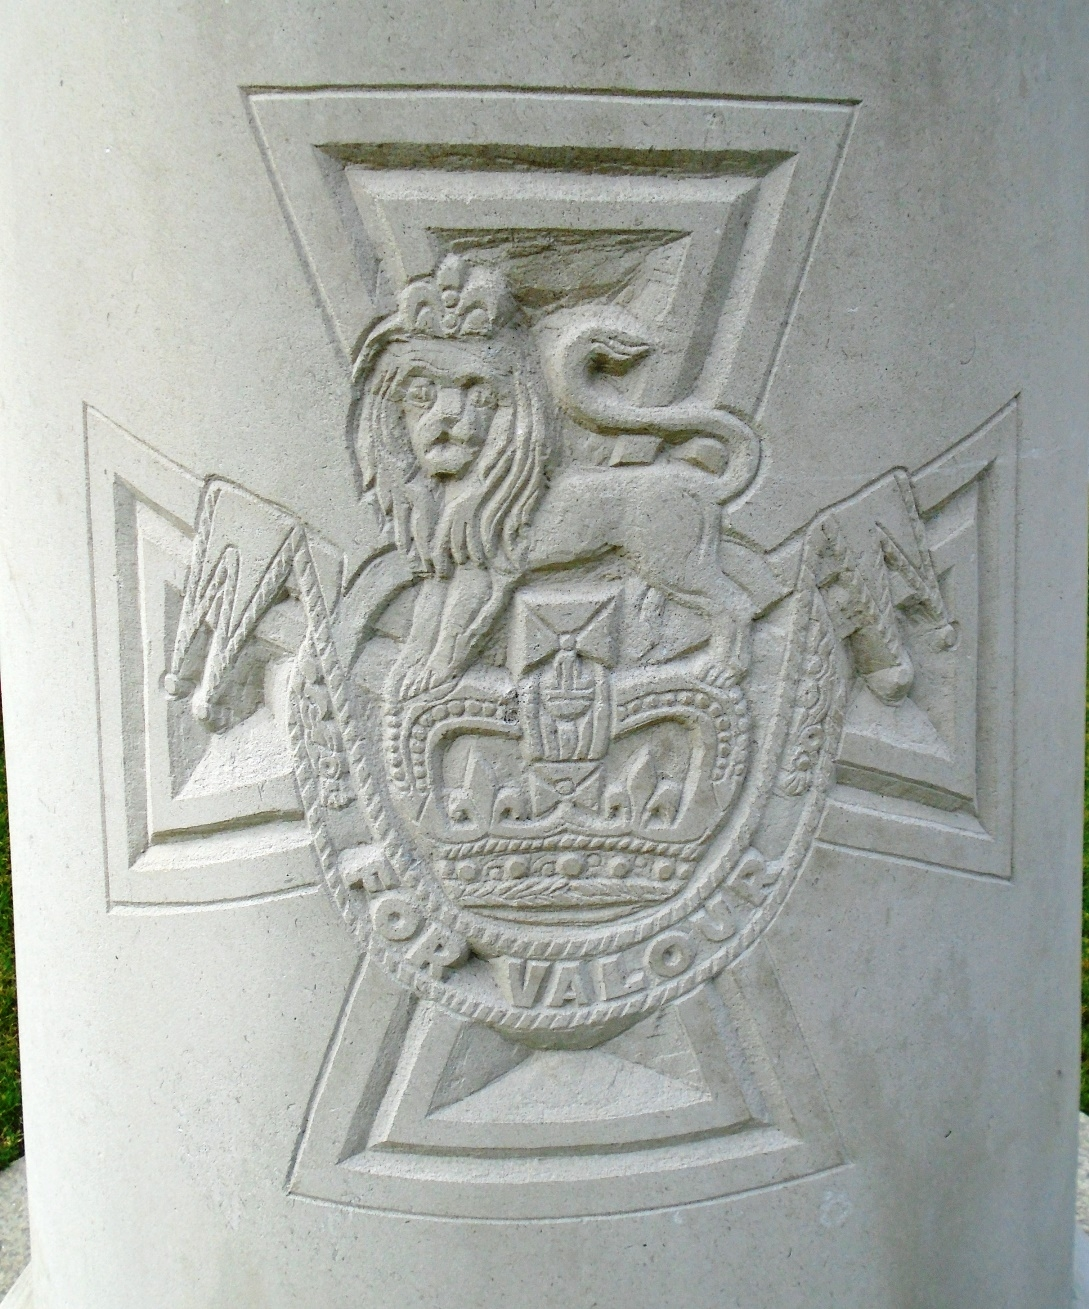 Victoria Cross Engraving on James J. Magennis Monument